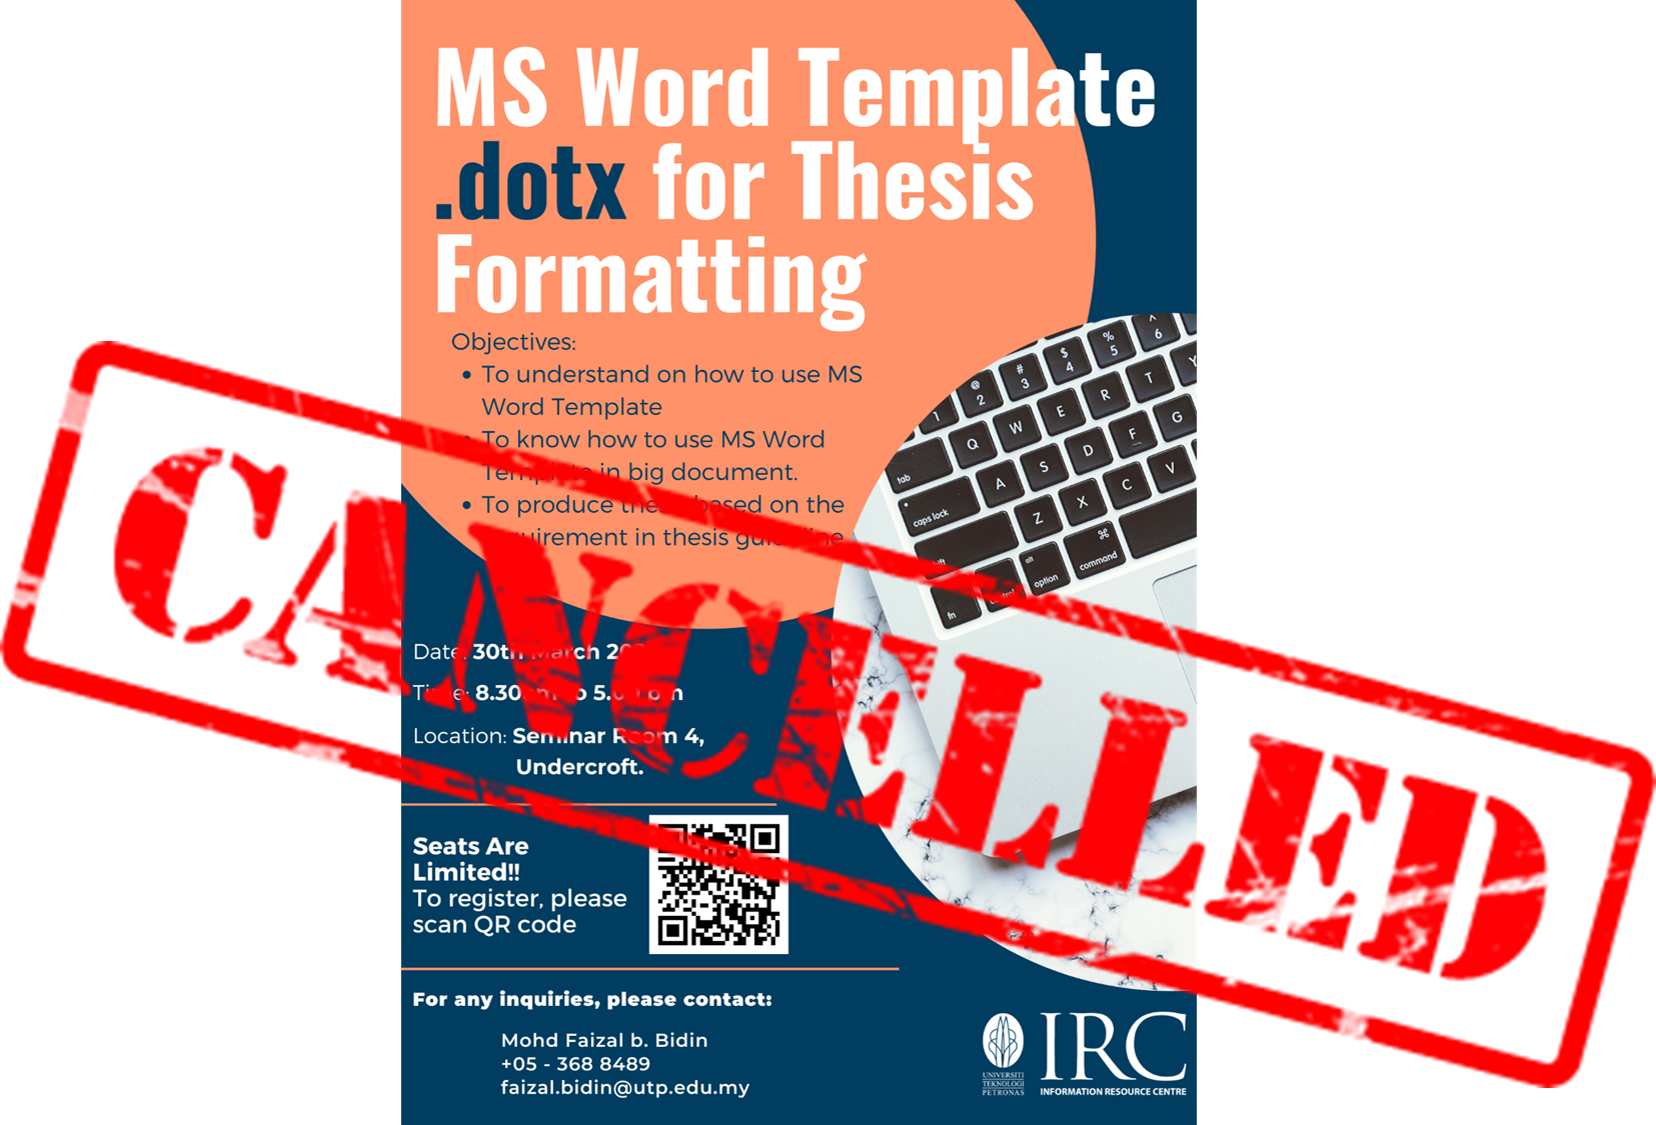 MS Word Template .dotx for Thesis Formatting